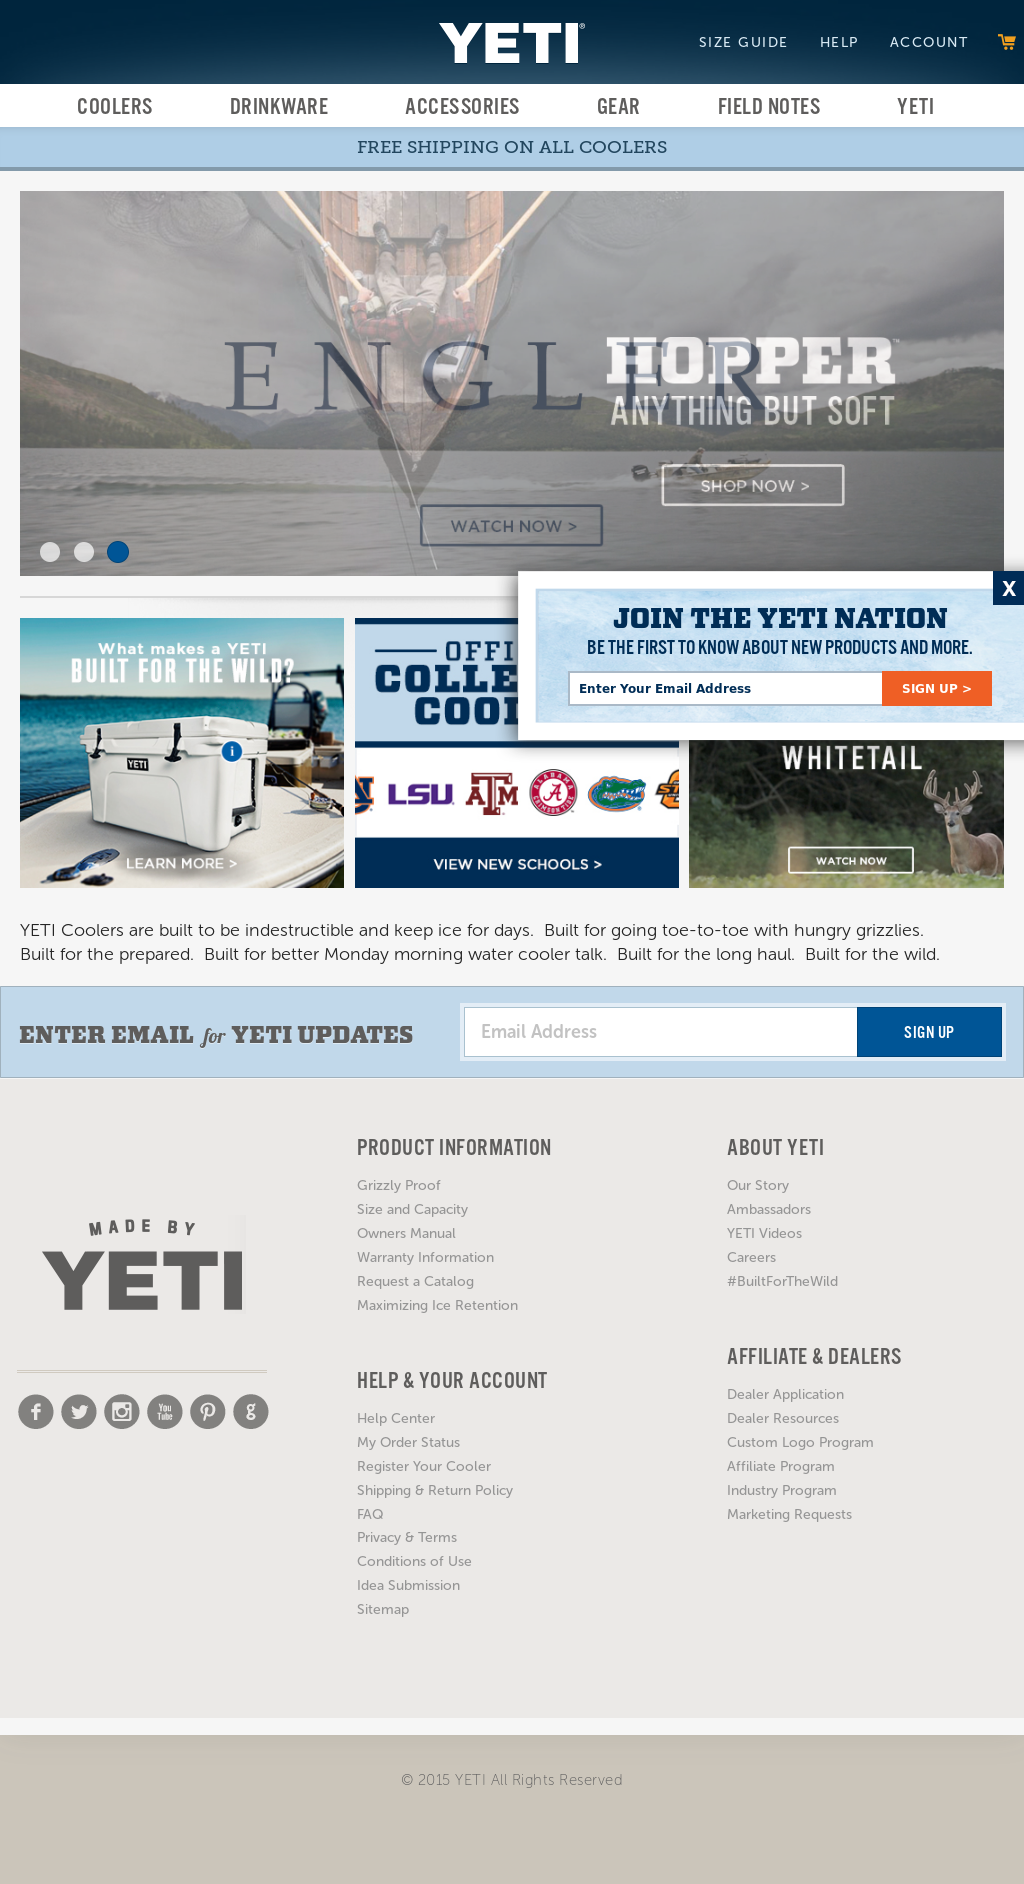 YETI Coolers Competitors, Revenue and Employees - Owler